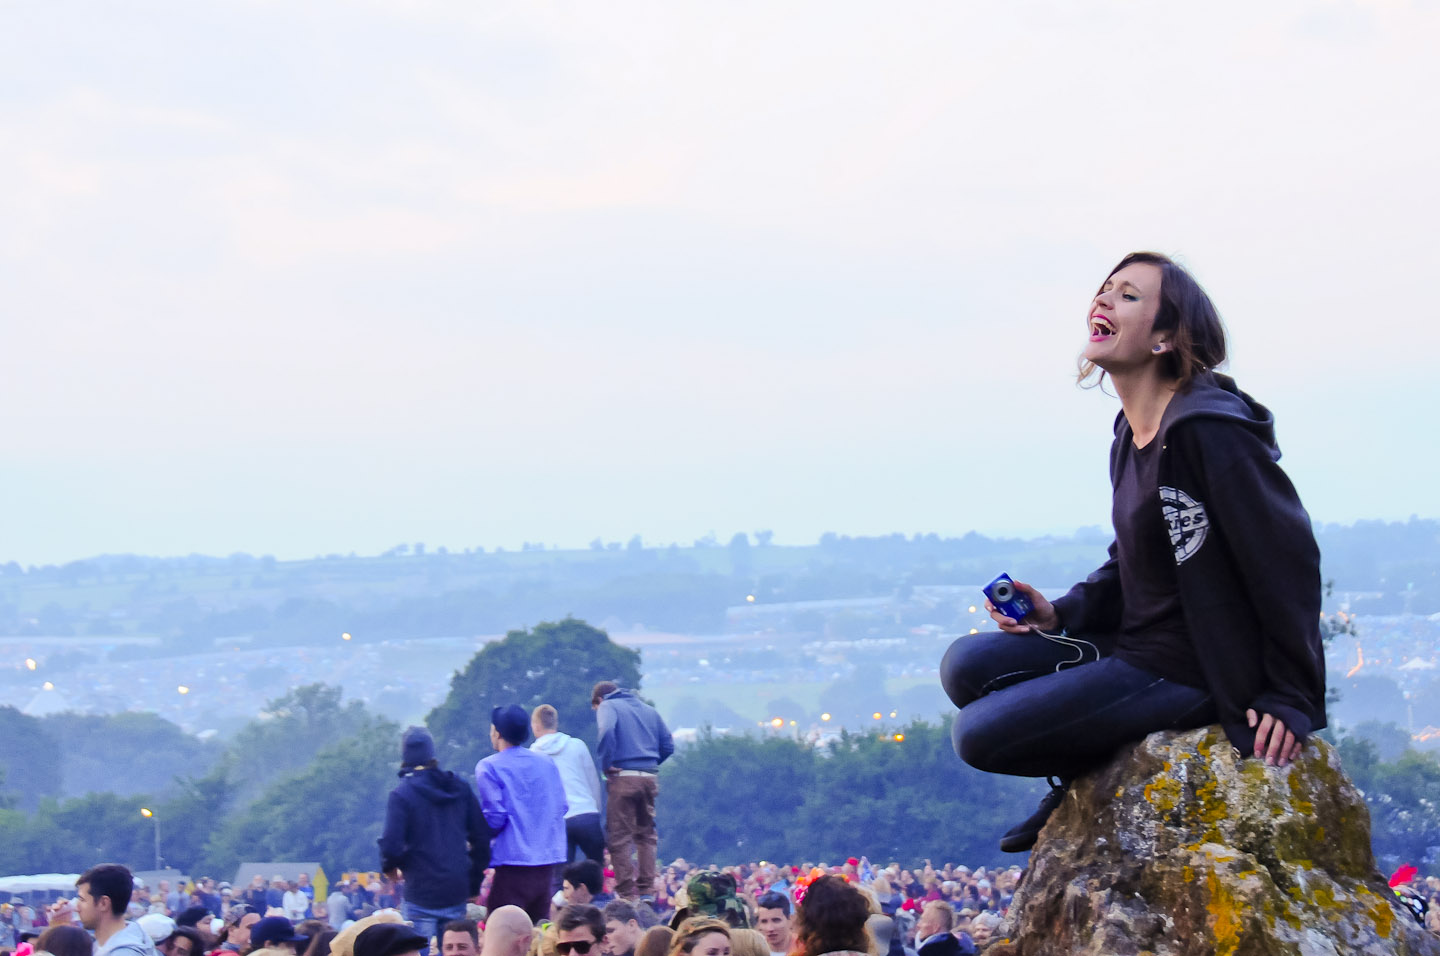 Glastonbury2013©LPDP_130626_017.jpg